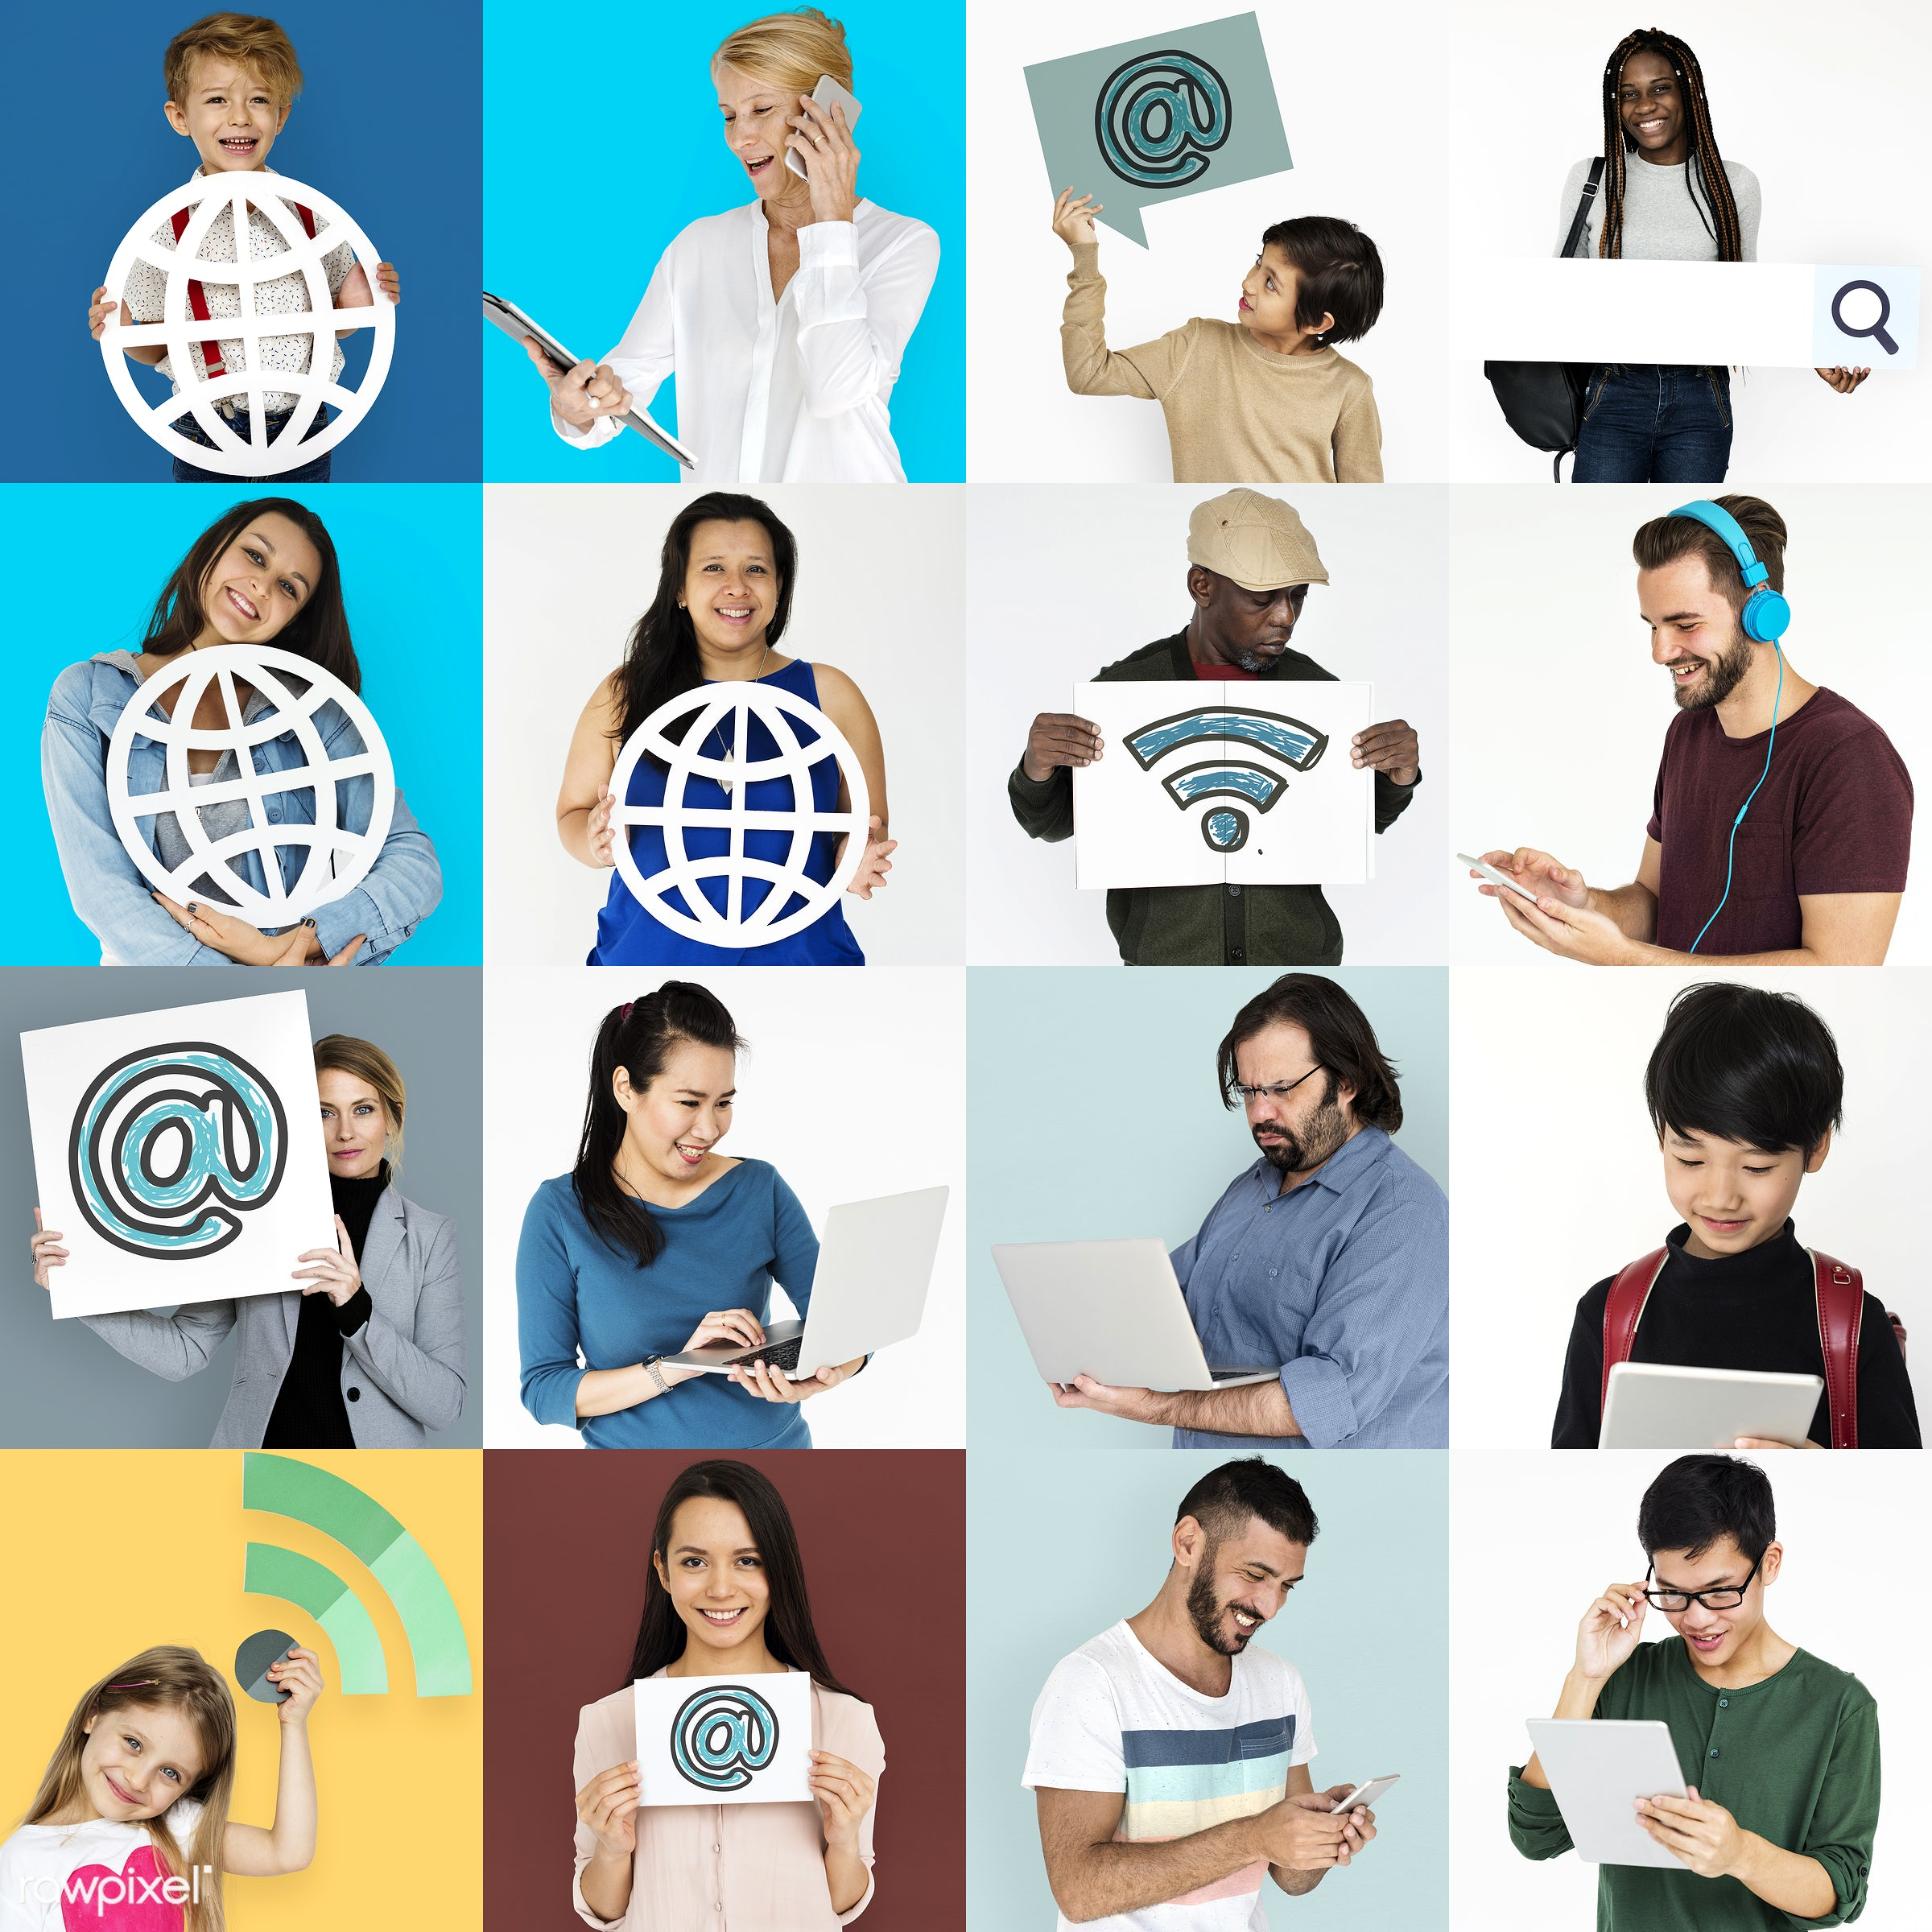 using, person, technology, diverse, variation, people, caucasian, kid, woman, laptop, headshot, connection, symbol, candid,...